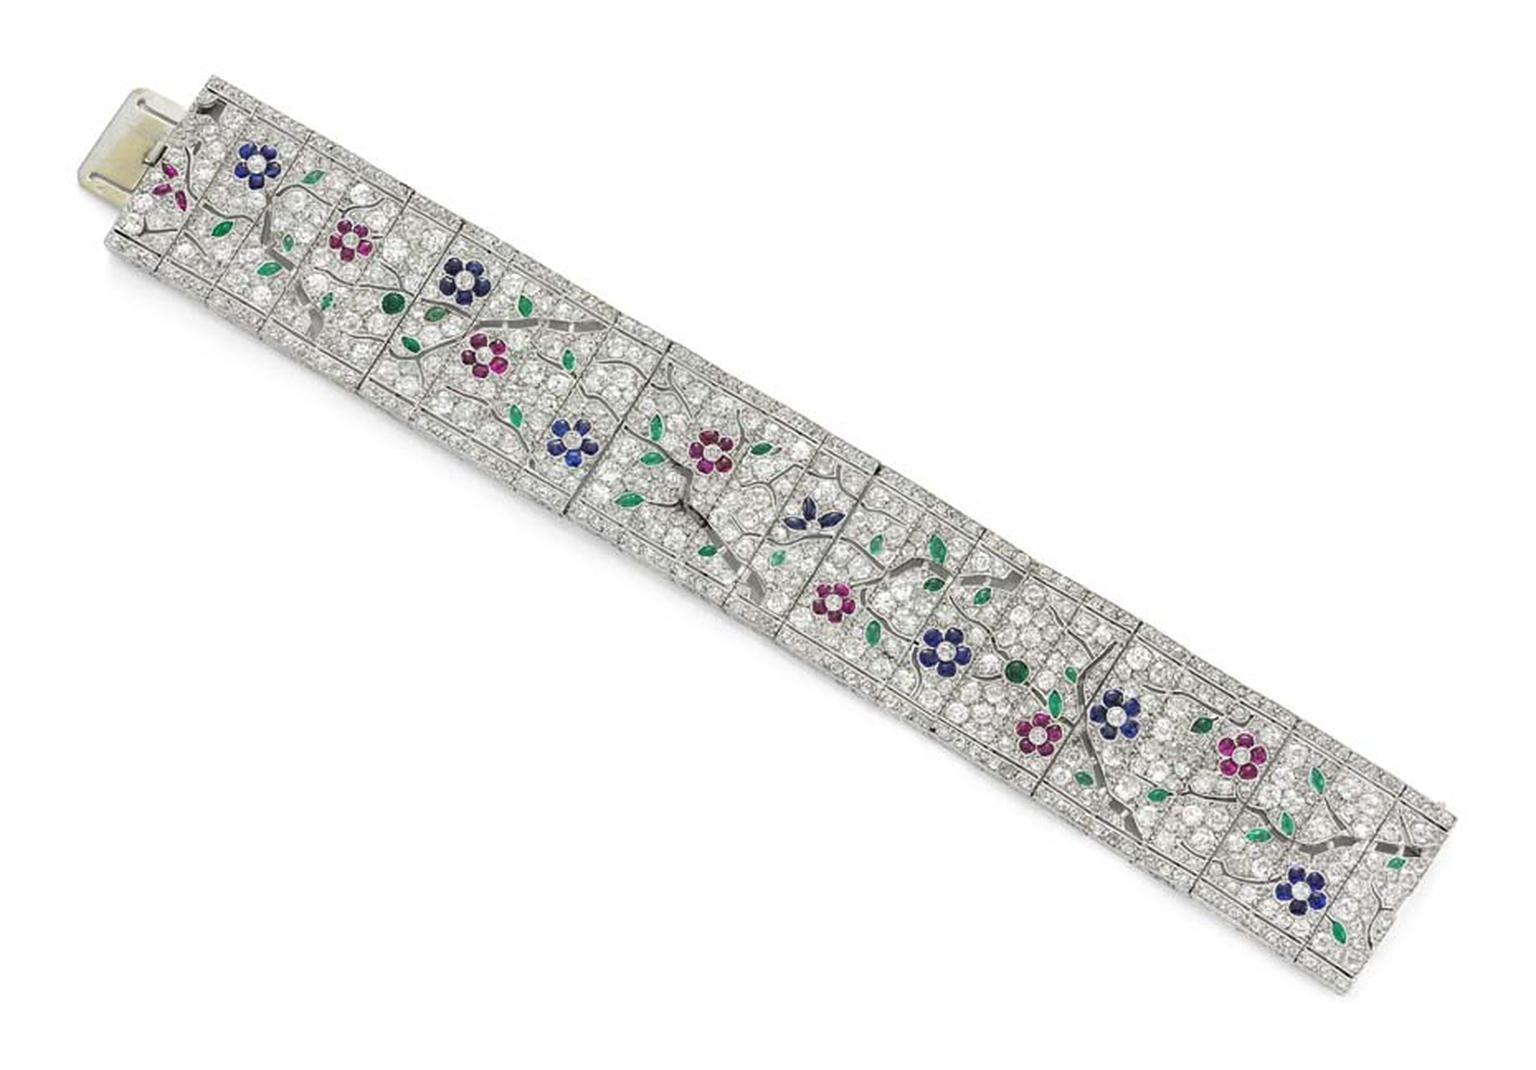 Art Deco cherry blossom bracelet by Lacloche Paris circa 1925, available at Simon Teakle.